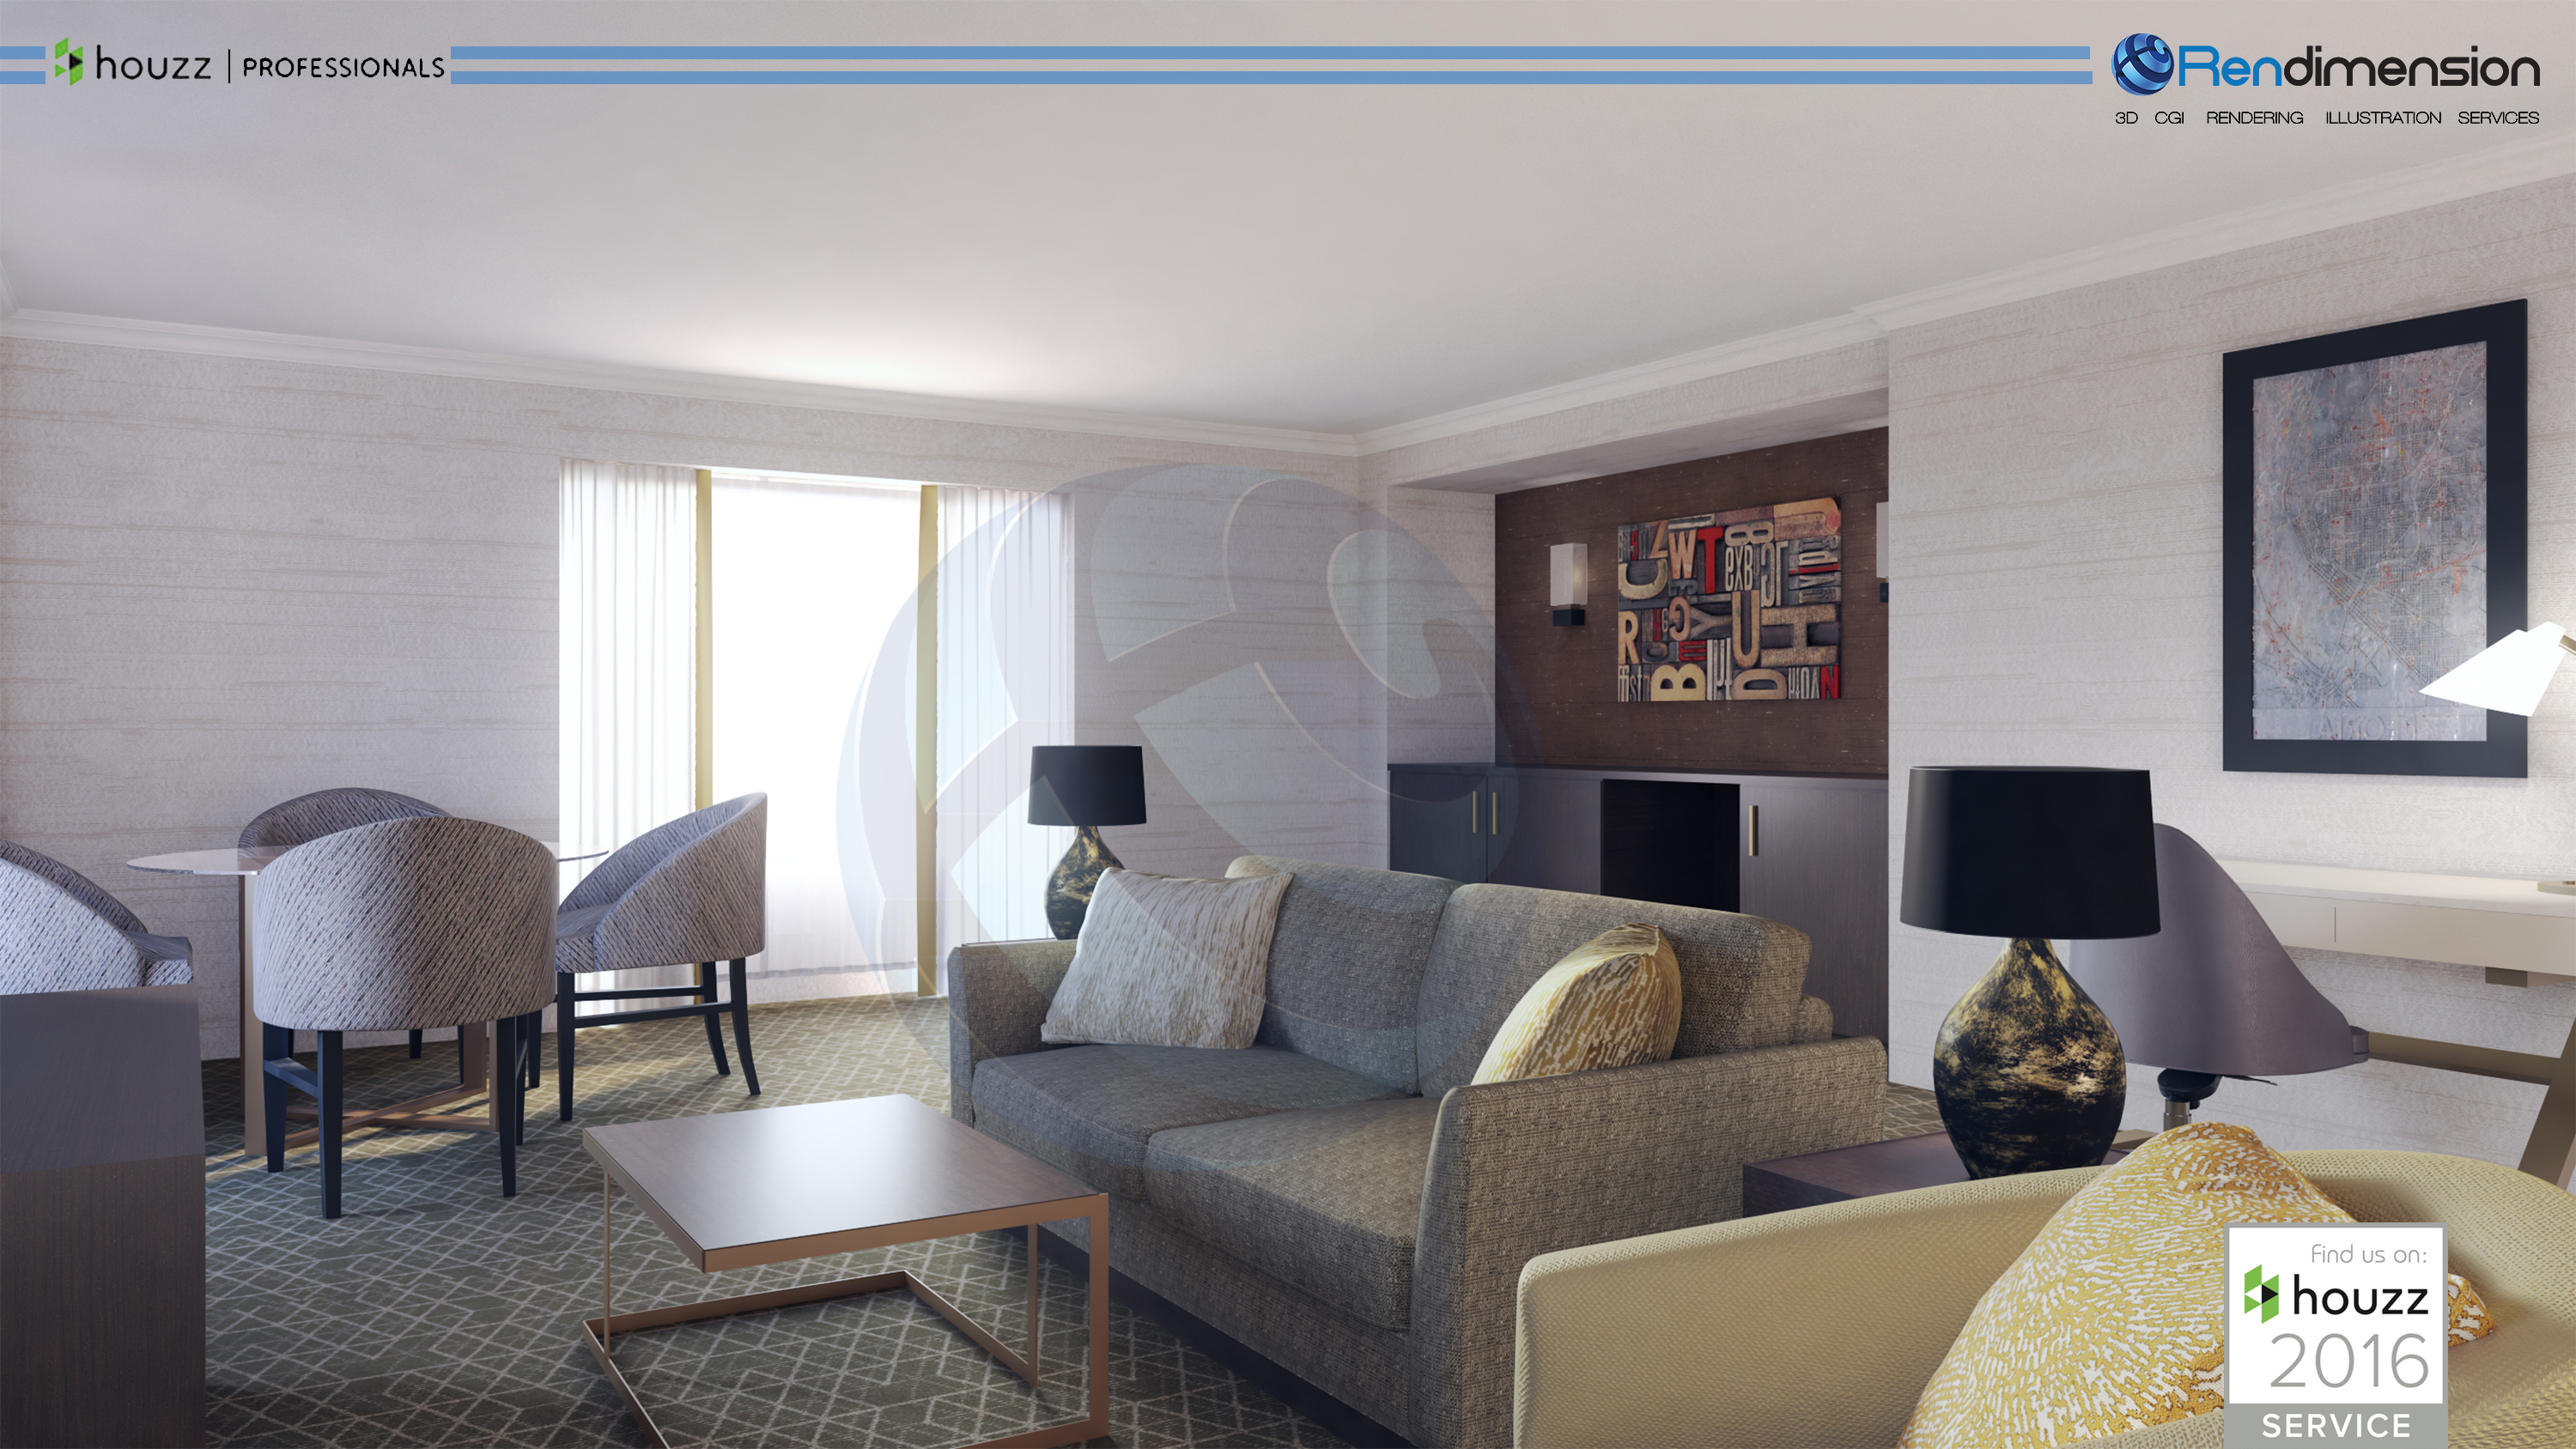 3D INTERIOR RENDERING CHICAGO WASHINGTON ILLINOIS USA ARCHITECTURAL ILLUSTRATION